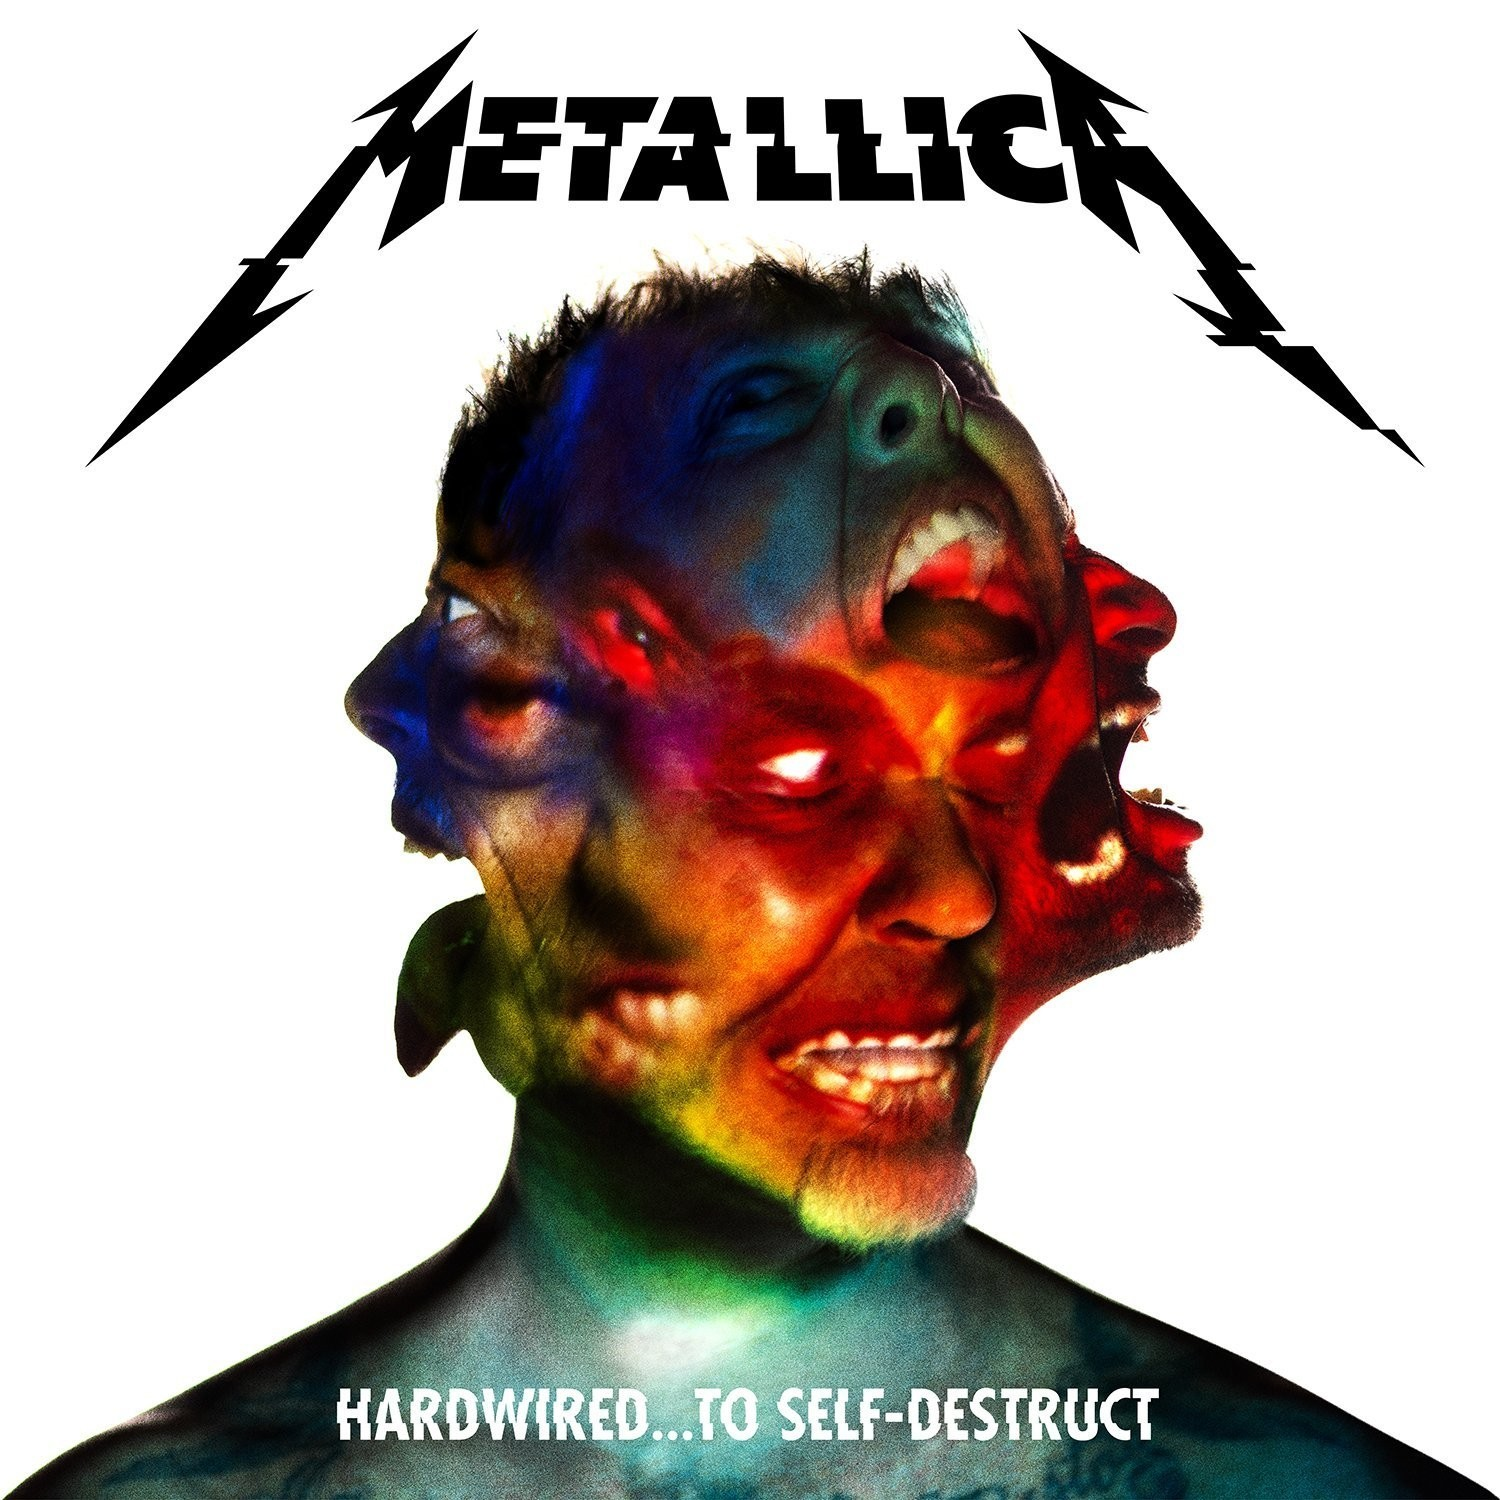 Metallica - Hardwired... To Self-Destruct - Rød vinyl